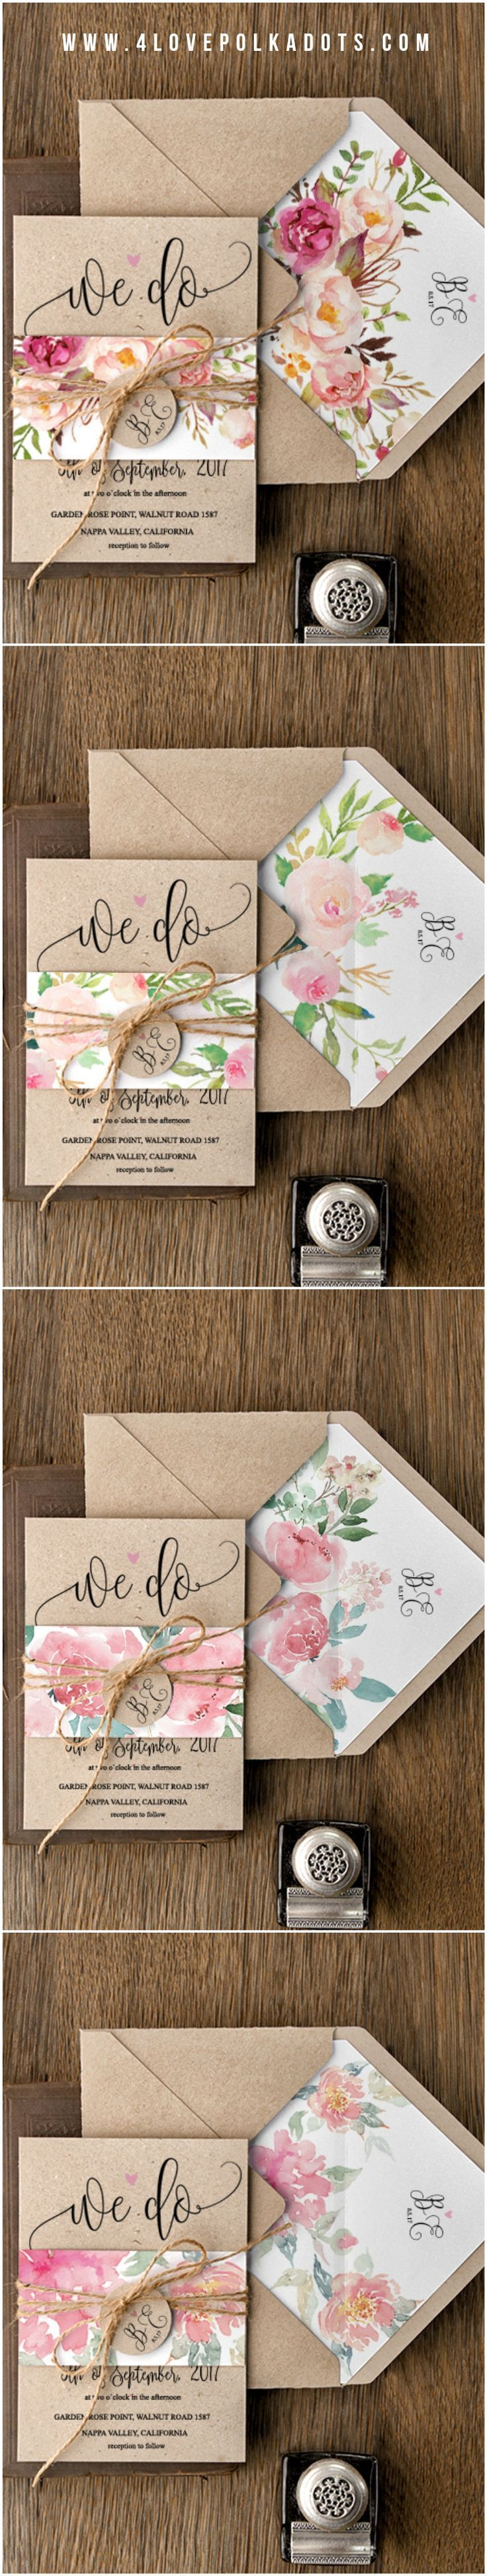 elegant wedding invites coupon codes%0A Most inexpensive invites I u    ve found  Pin for the color    Inexpensive Wedding  InvitationsWedding Invitations Elegant